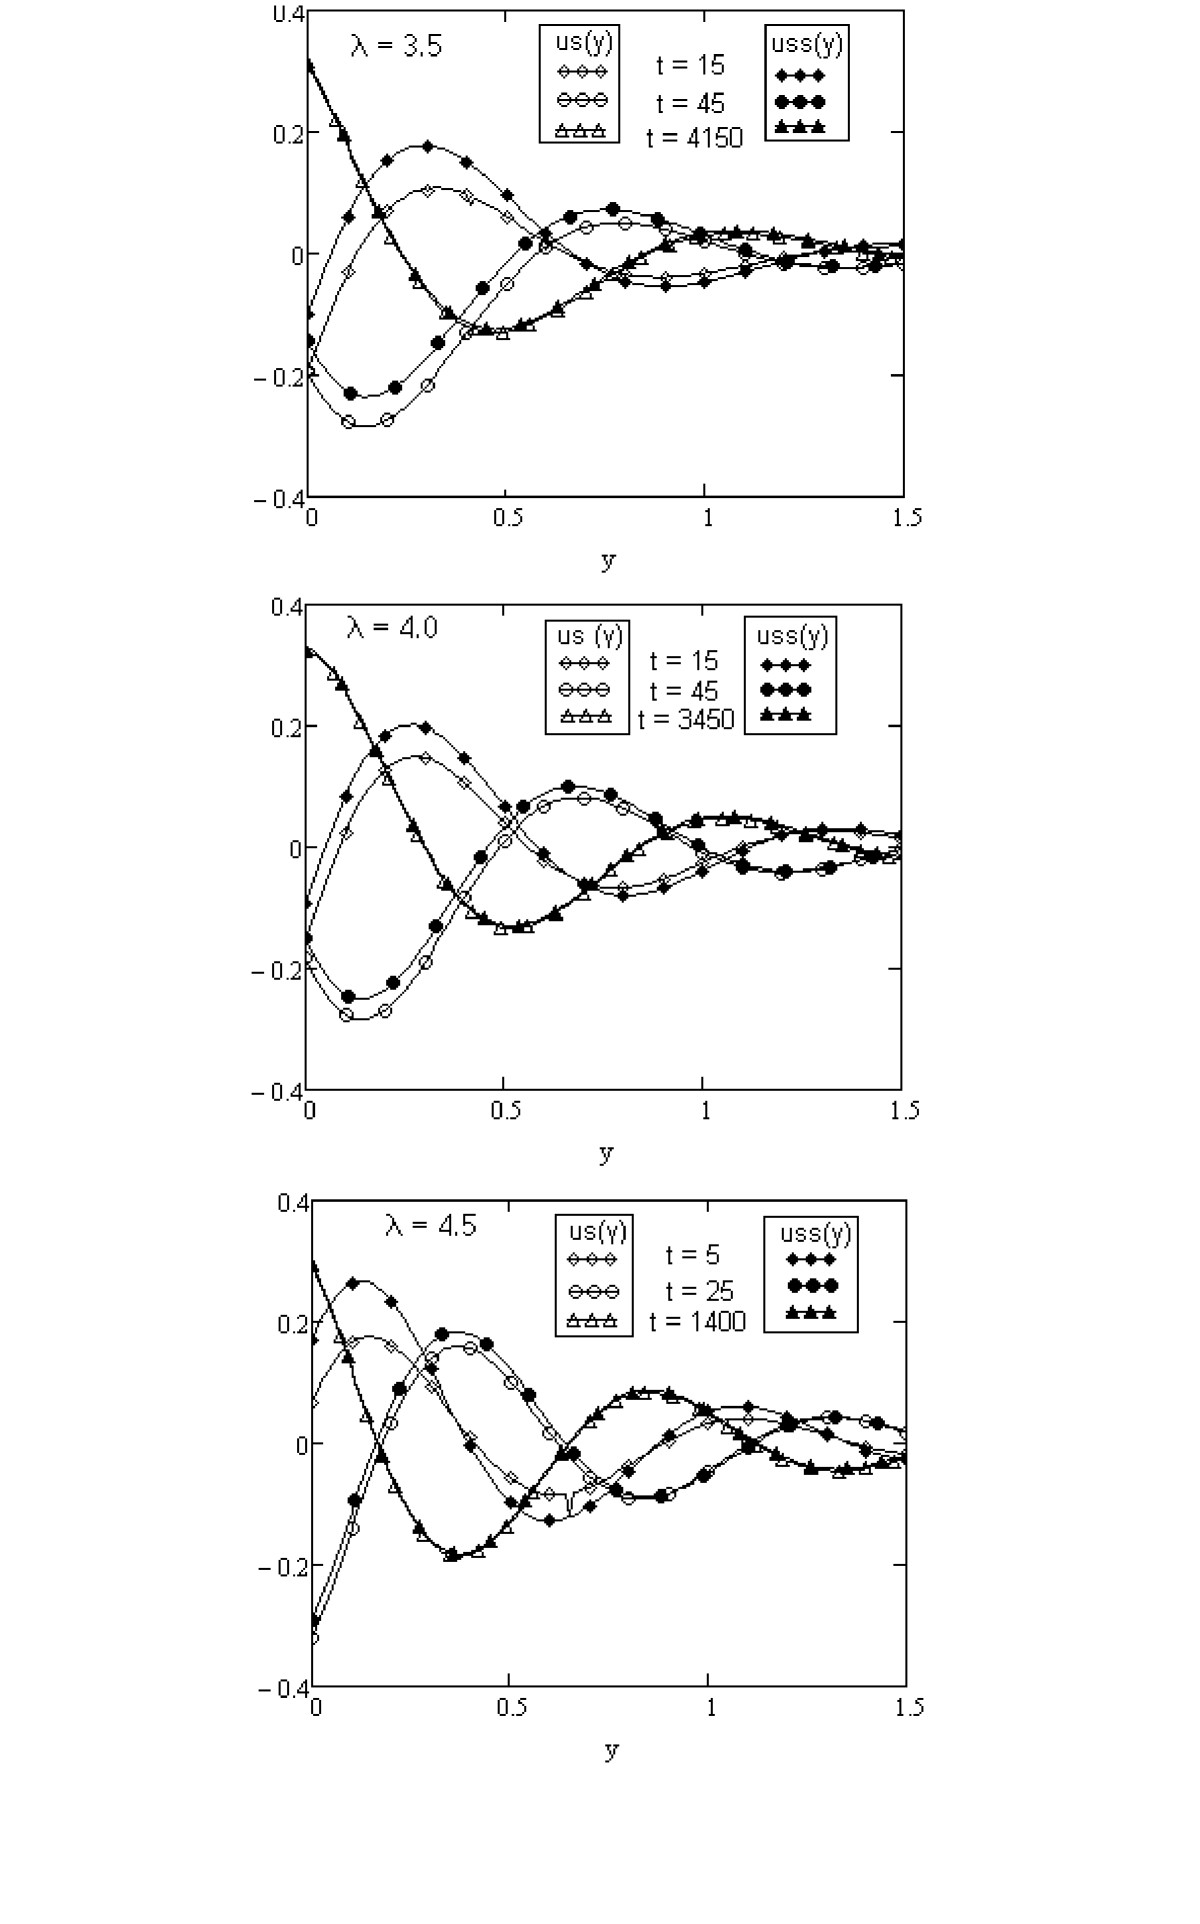 http://static-content.springer.com/image/art%3A10.1186%2F1687-2770-2012-48/MediaObjects/13661_2011_Article_139_Fig2_HTML.jpg